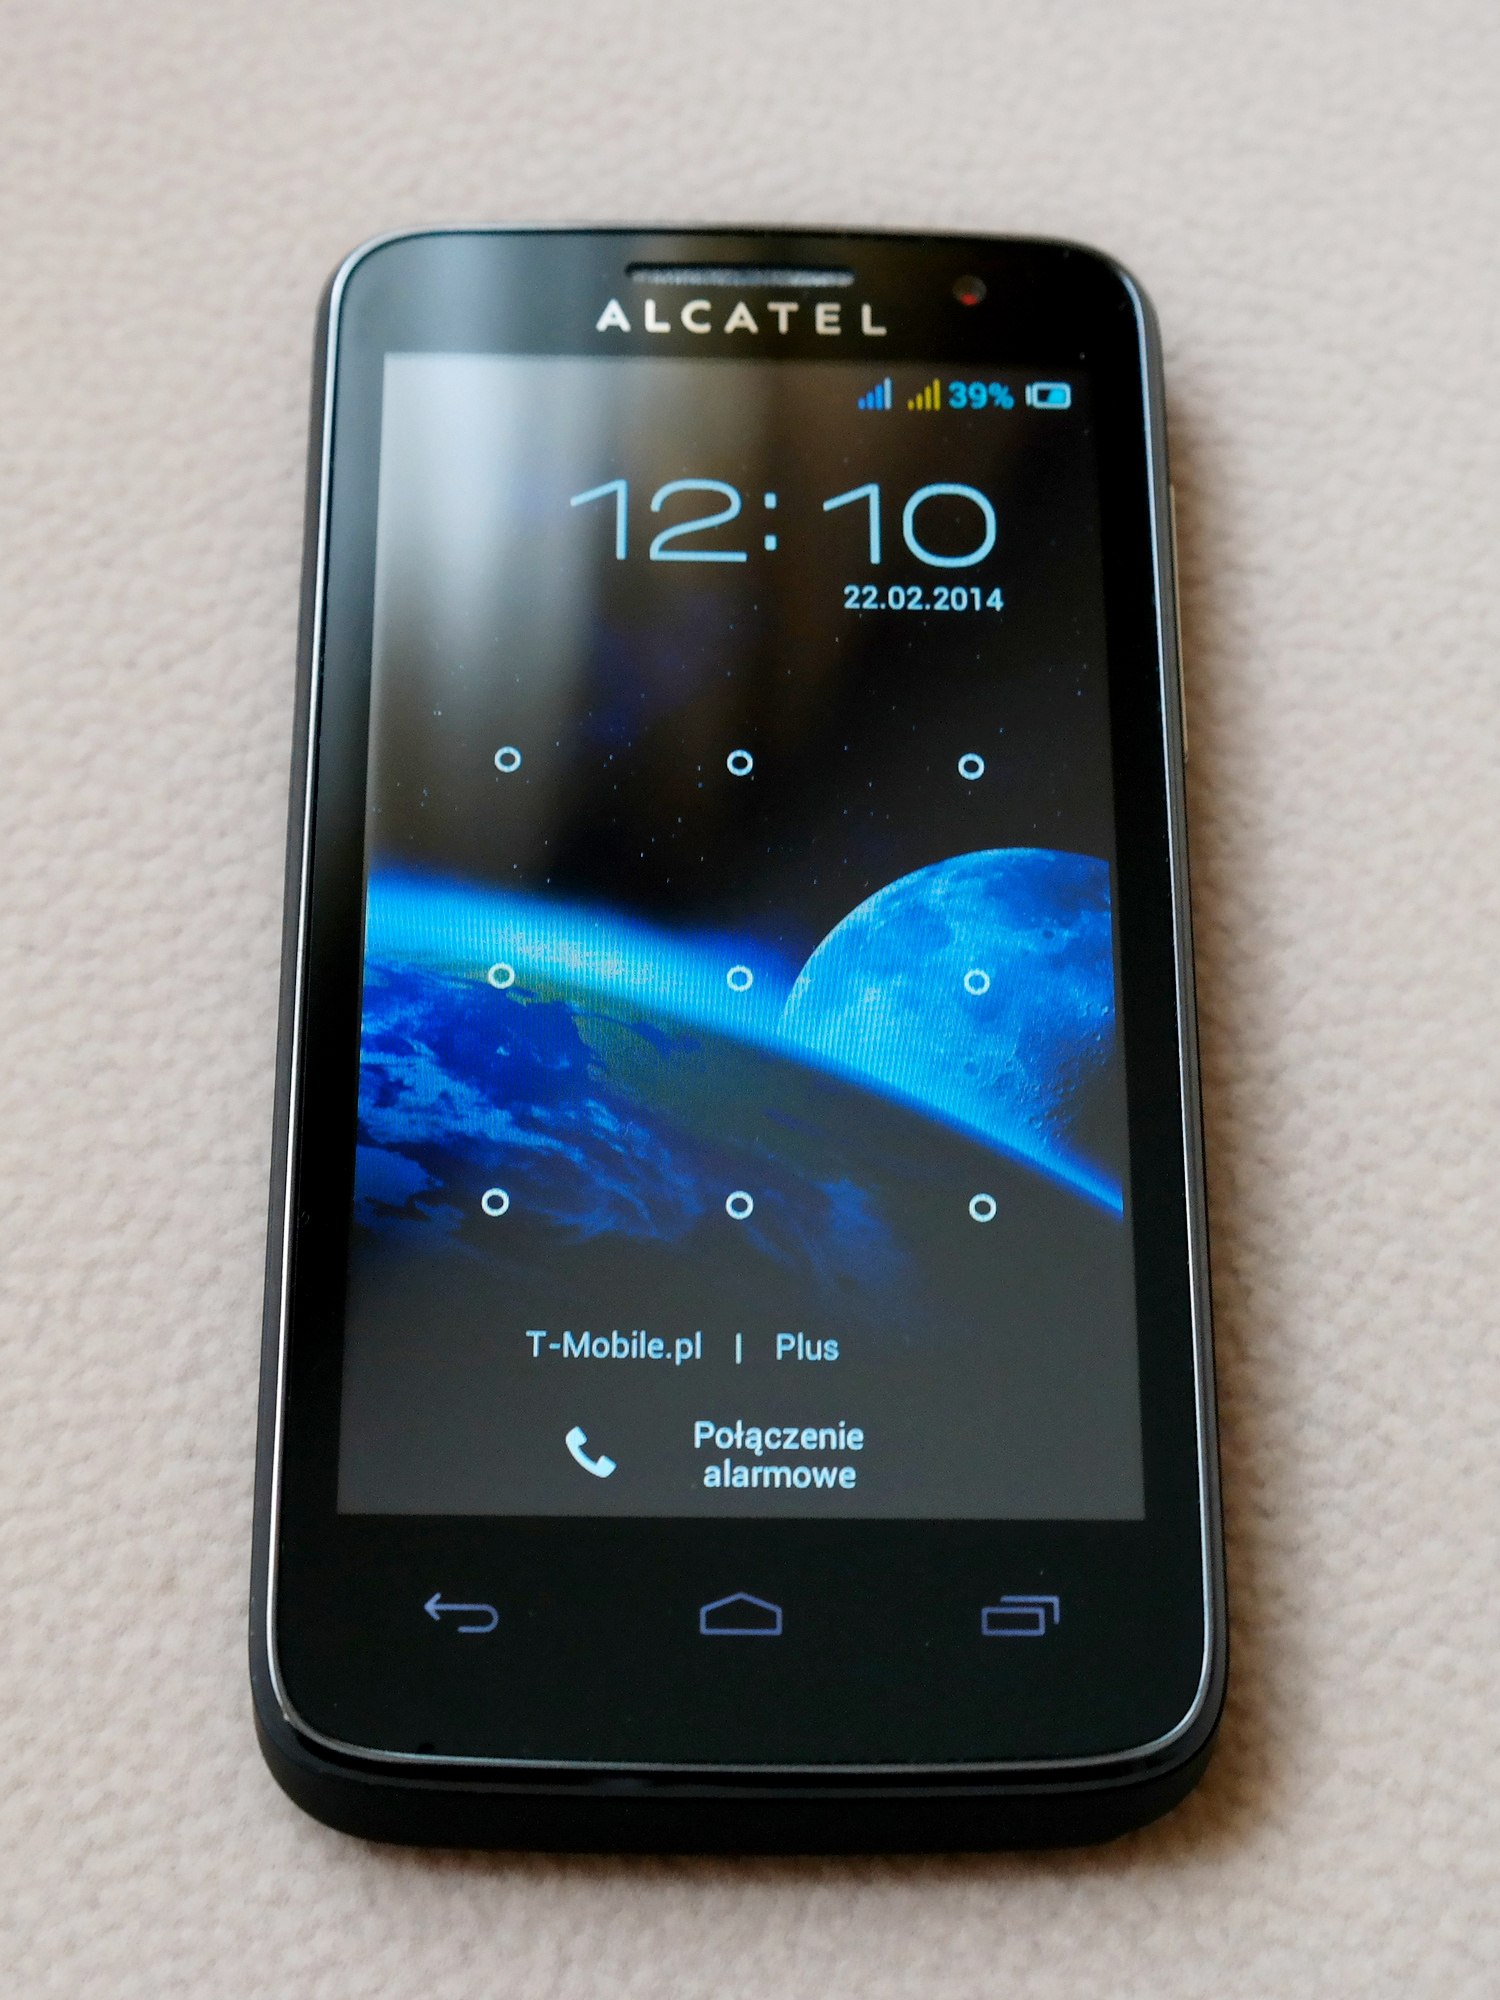 Alcatel One Touch - Wikipedia, the free encyclopedia